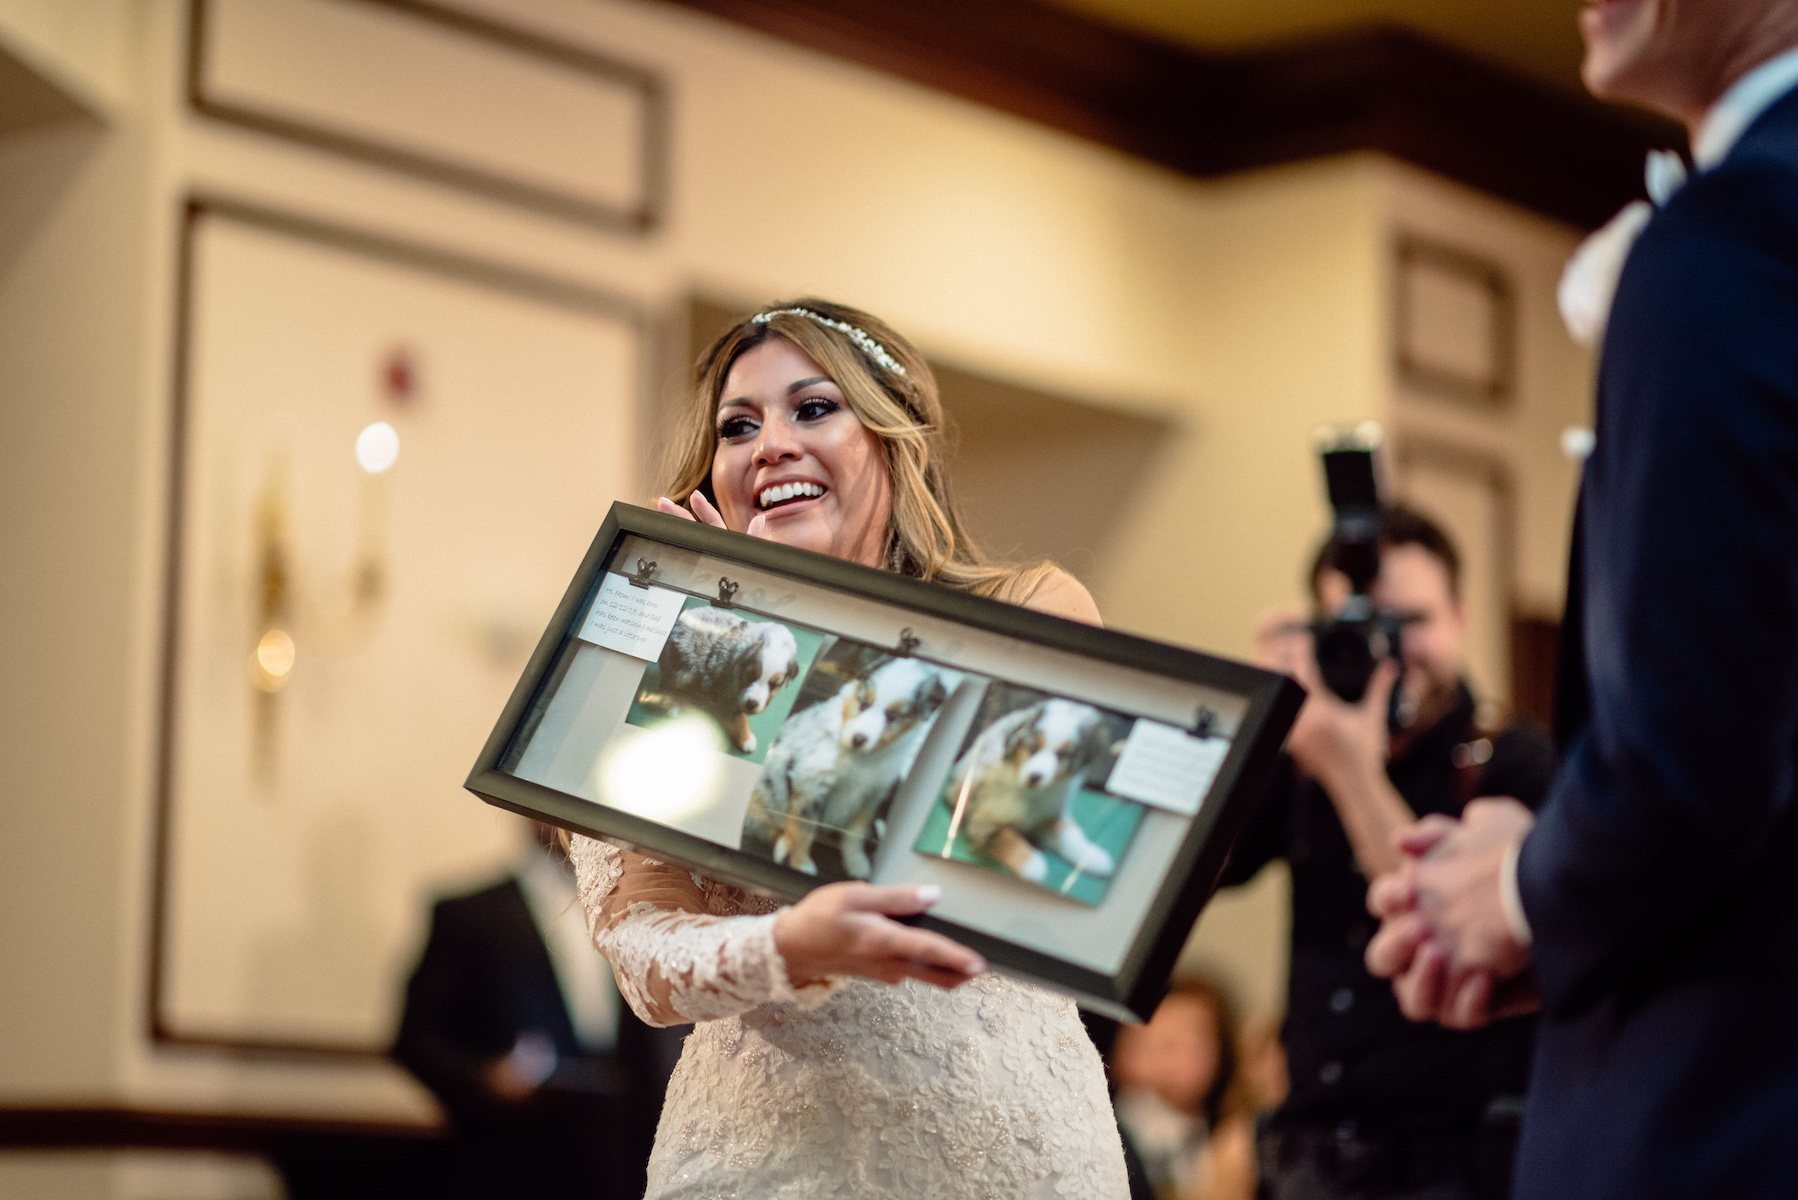 Wedding Surprise The Club at the Strand Naples FL Matt Steeves images.jpg